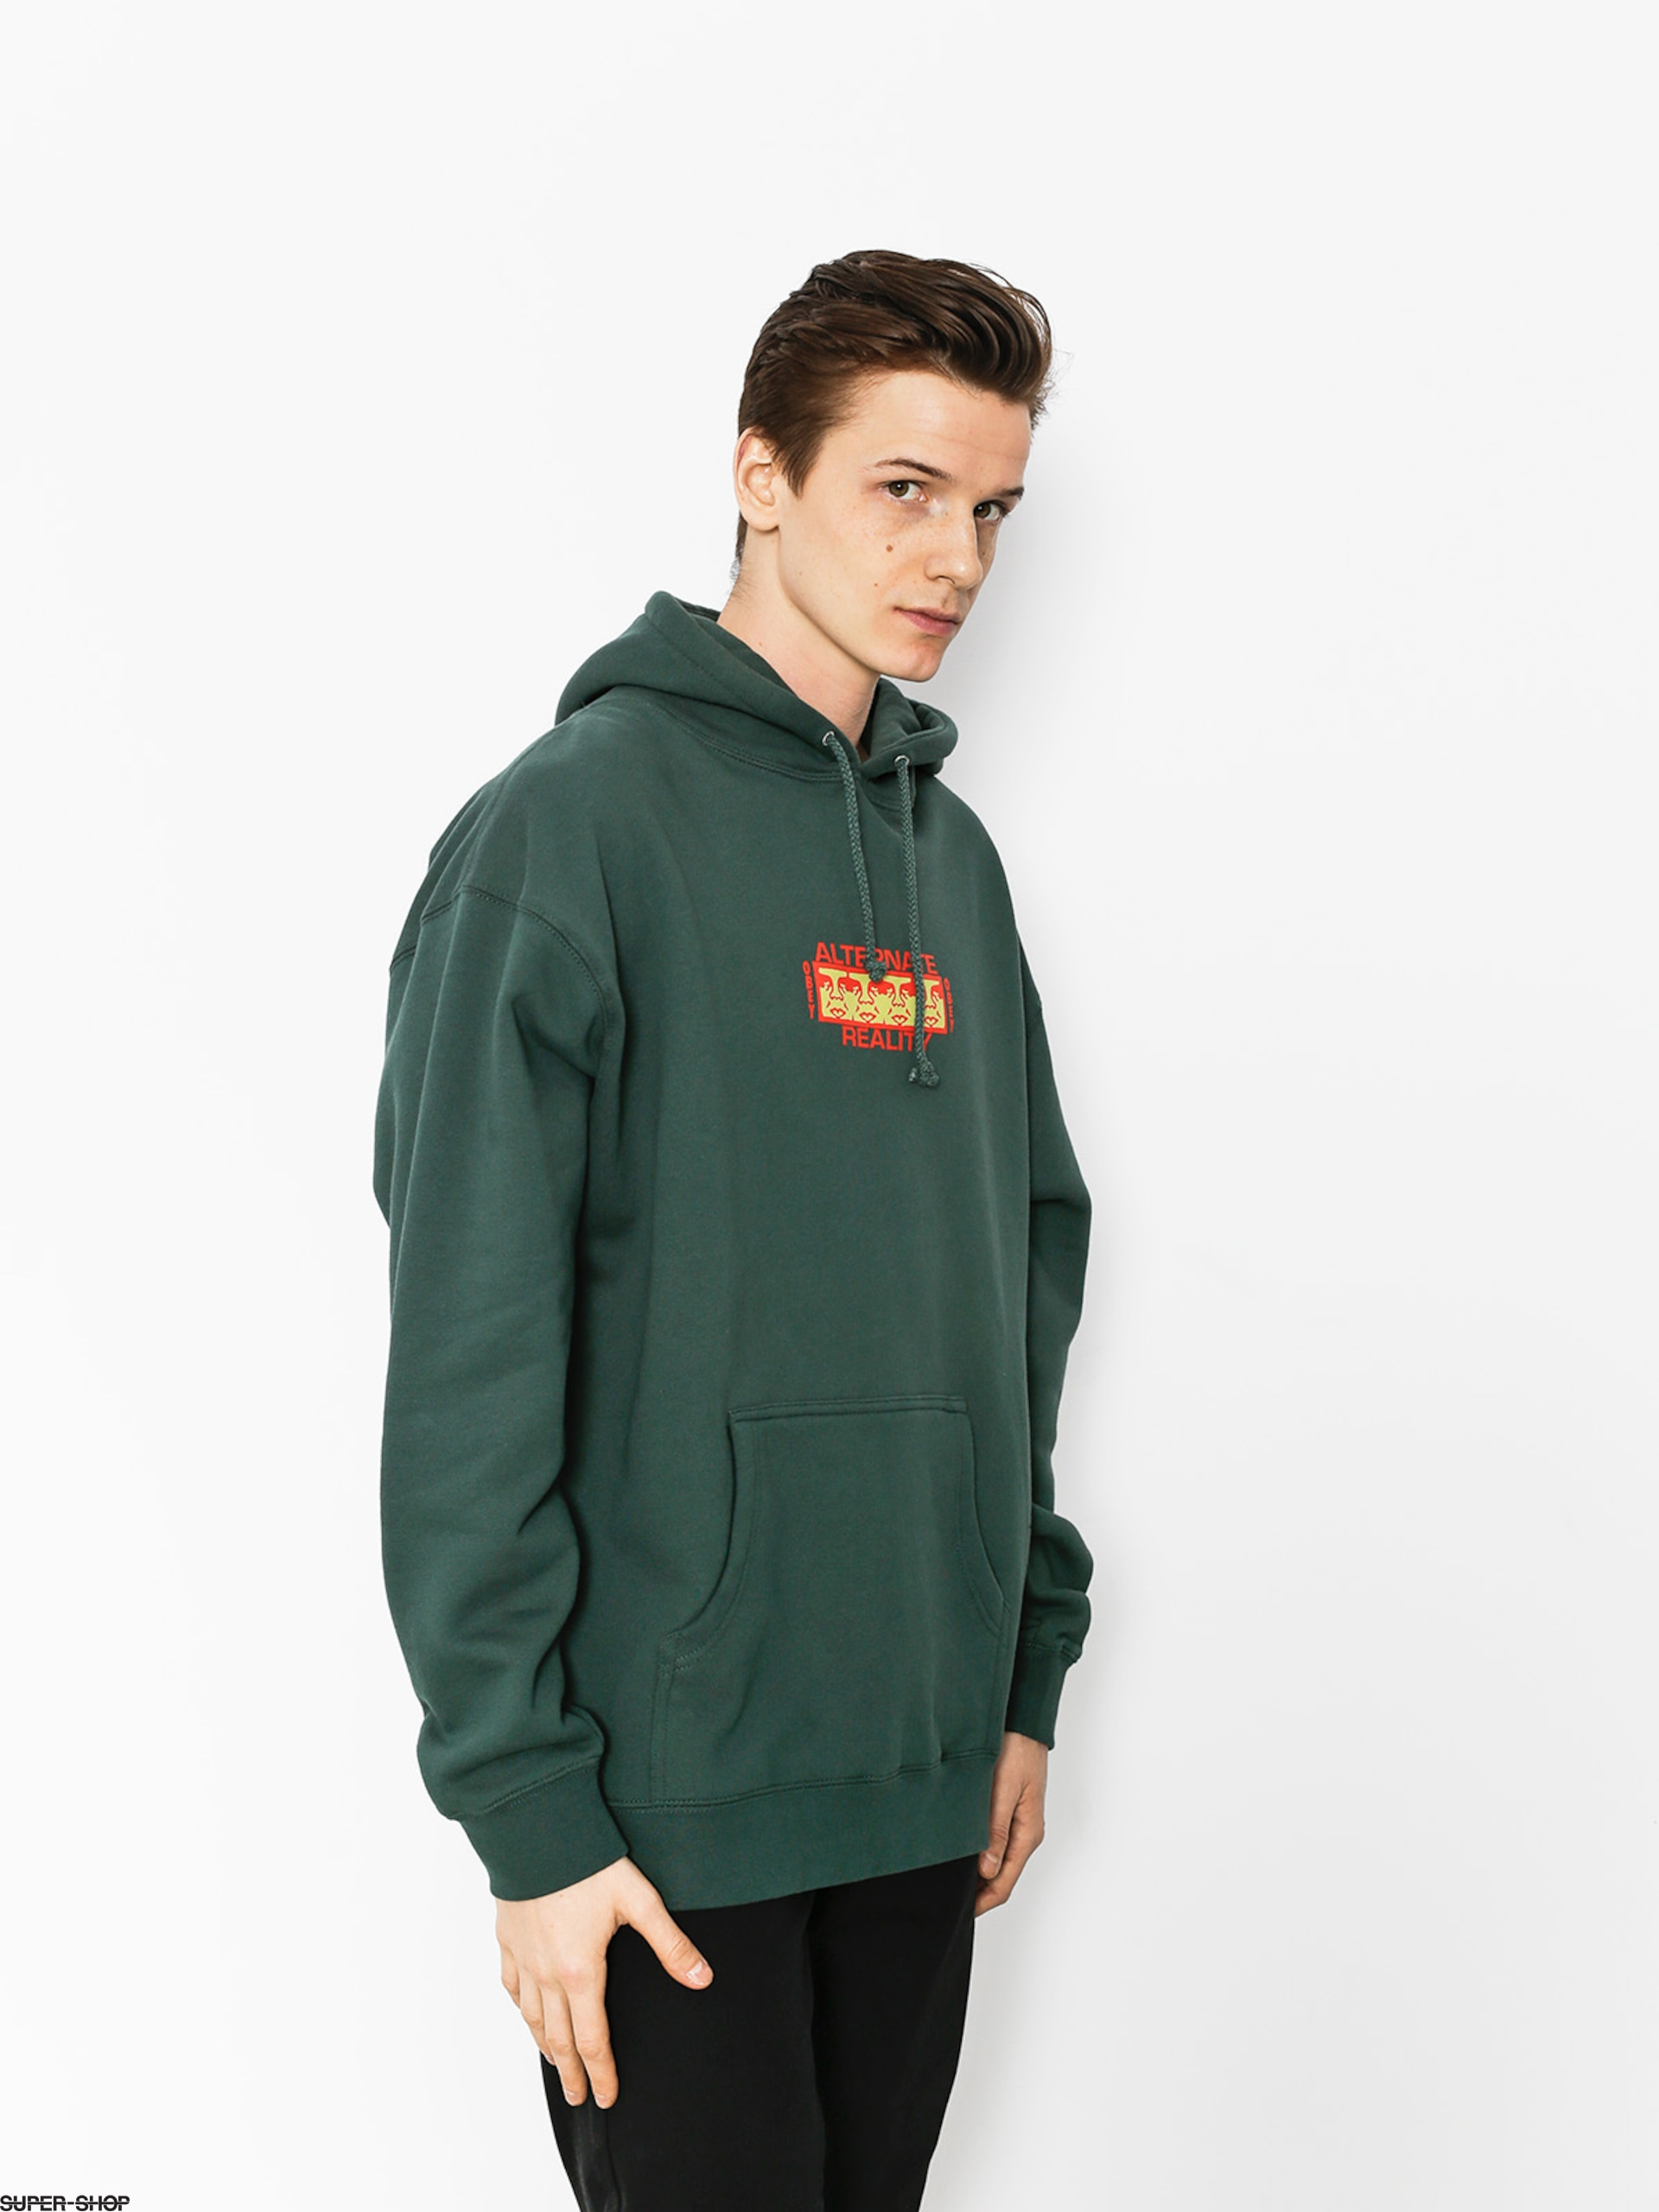 OBEY Sweatshirt Alternate Reality HD (alp)